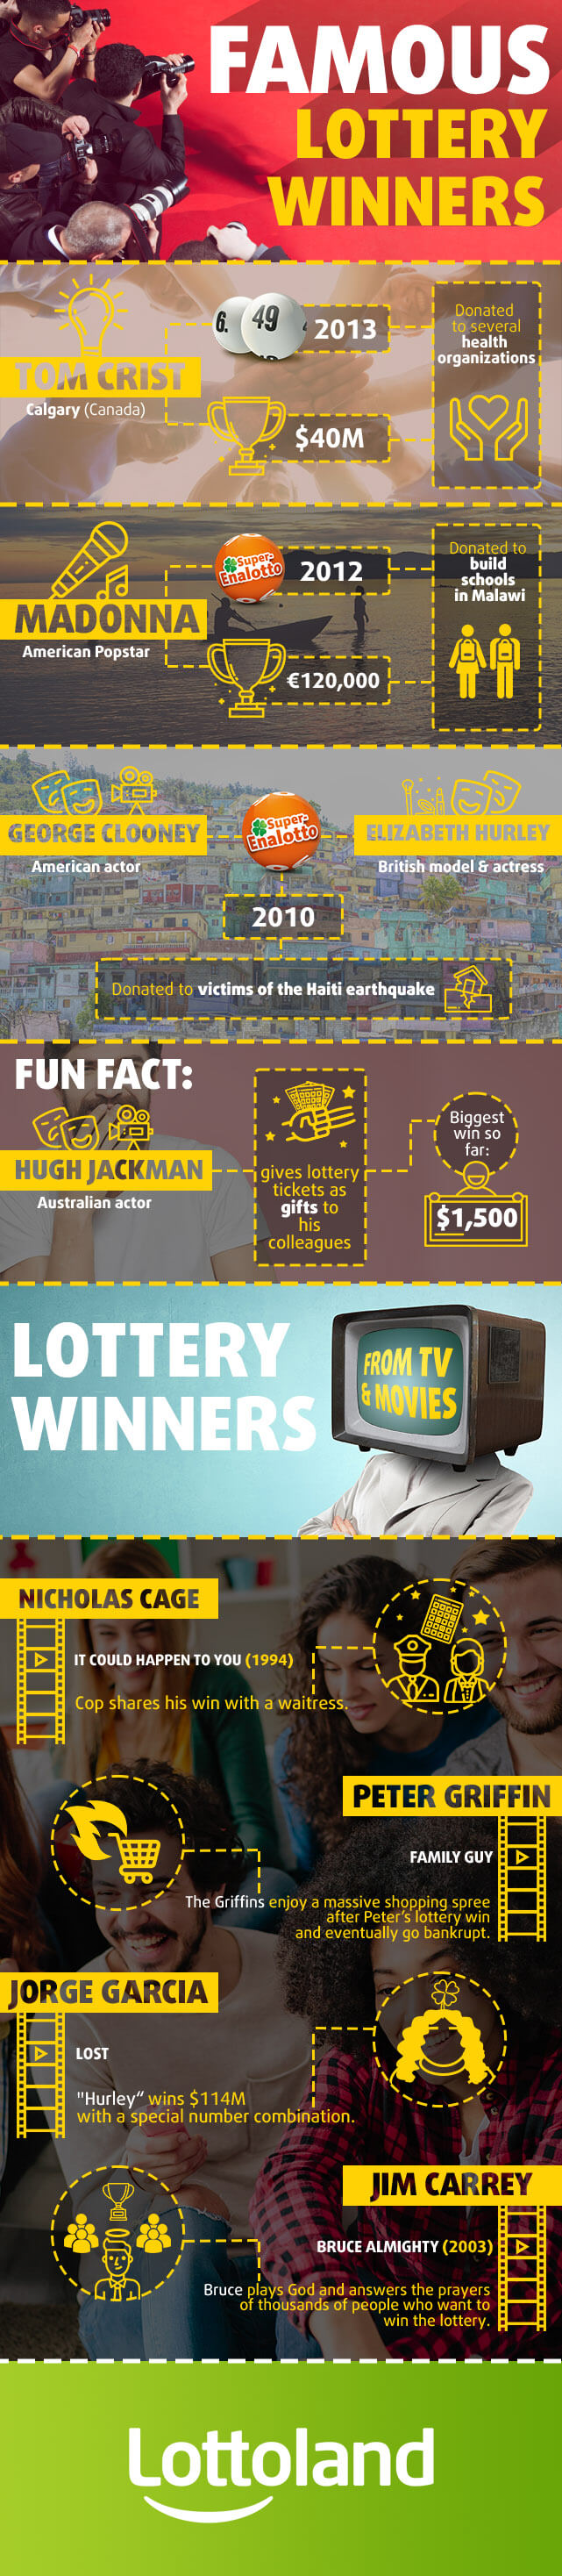 Famous Lottery Winners